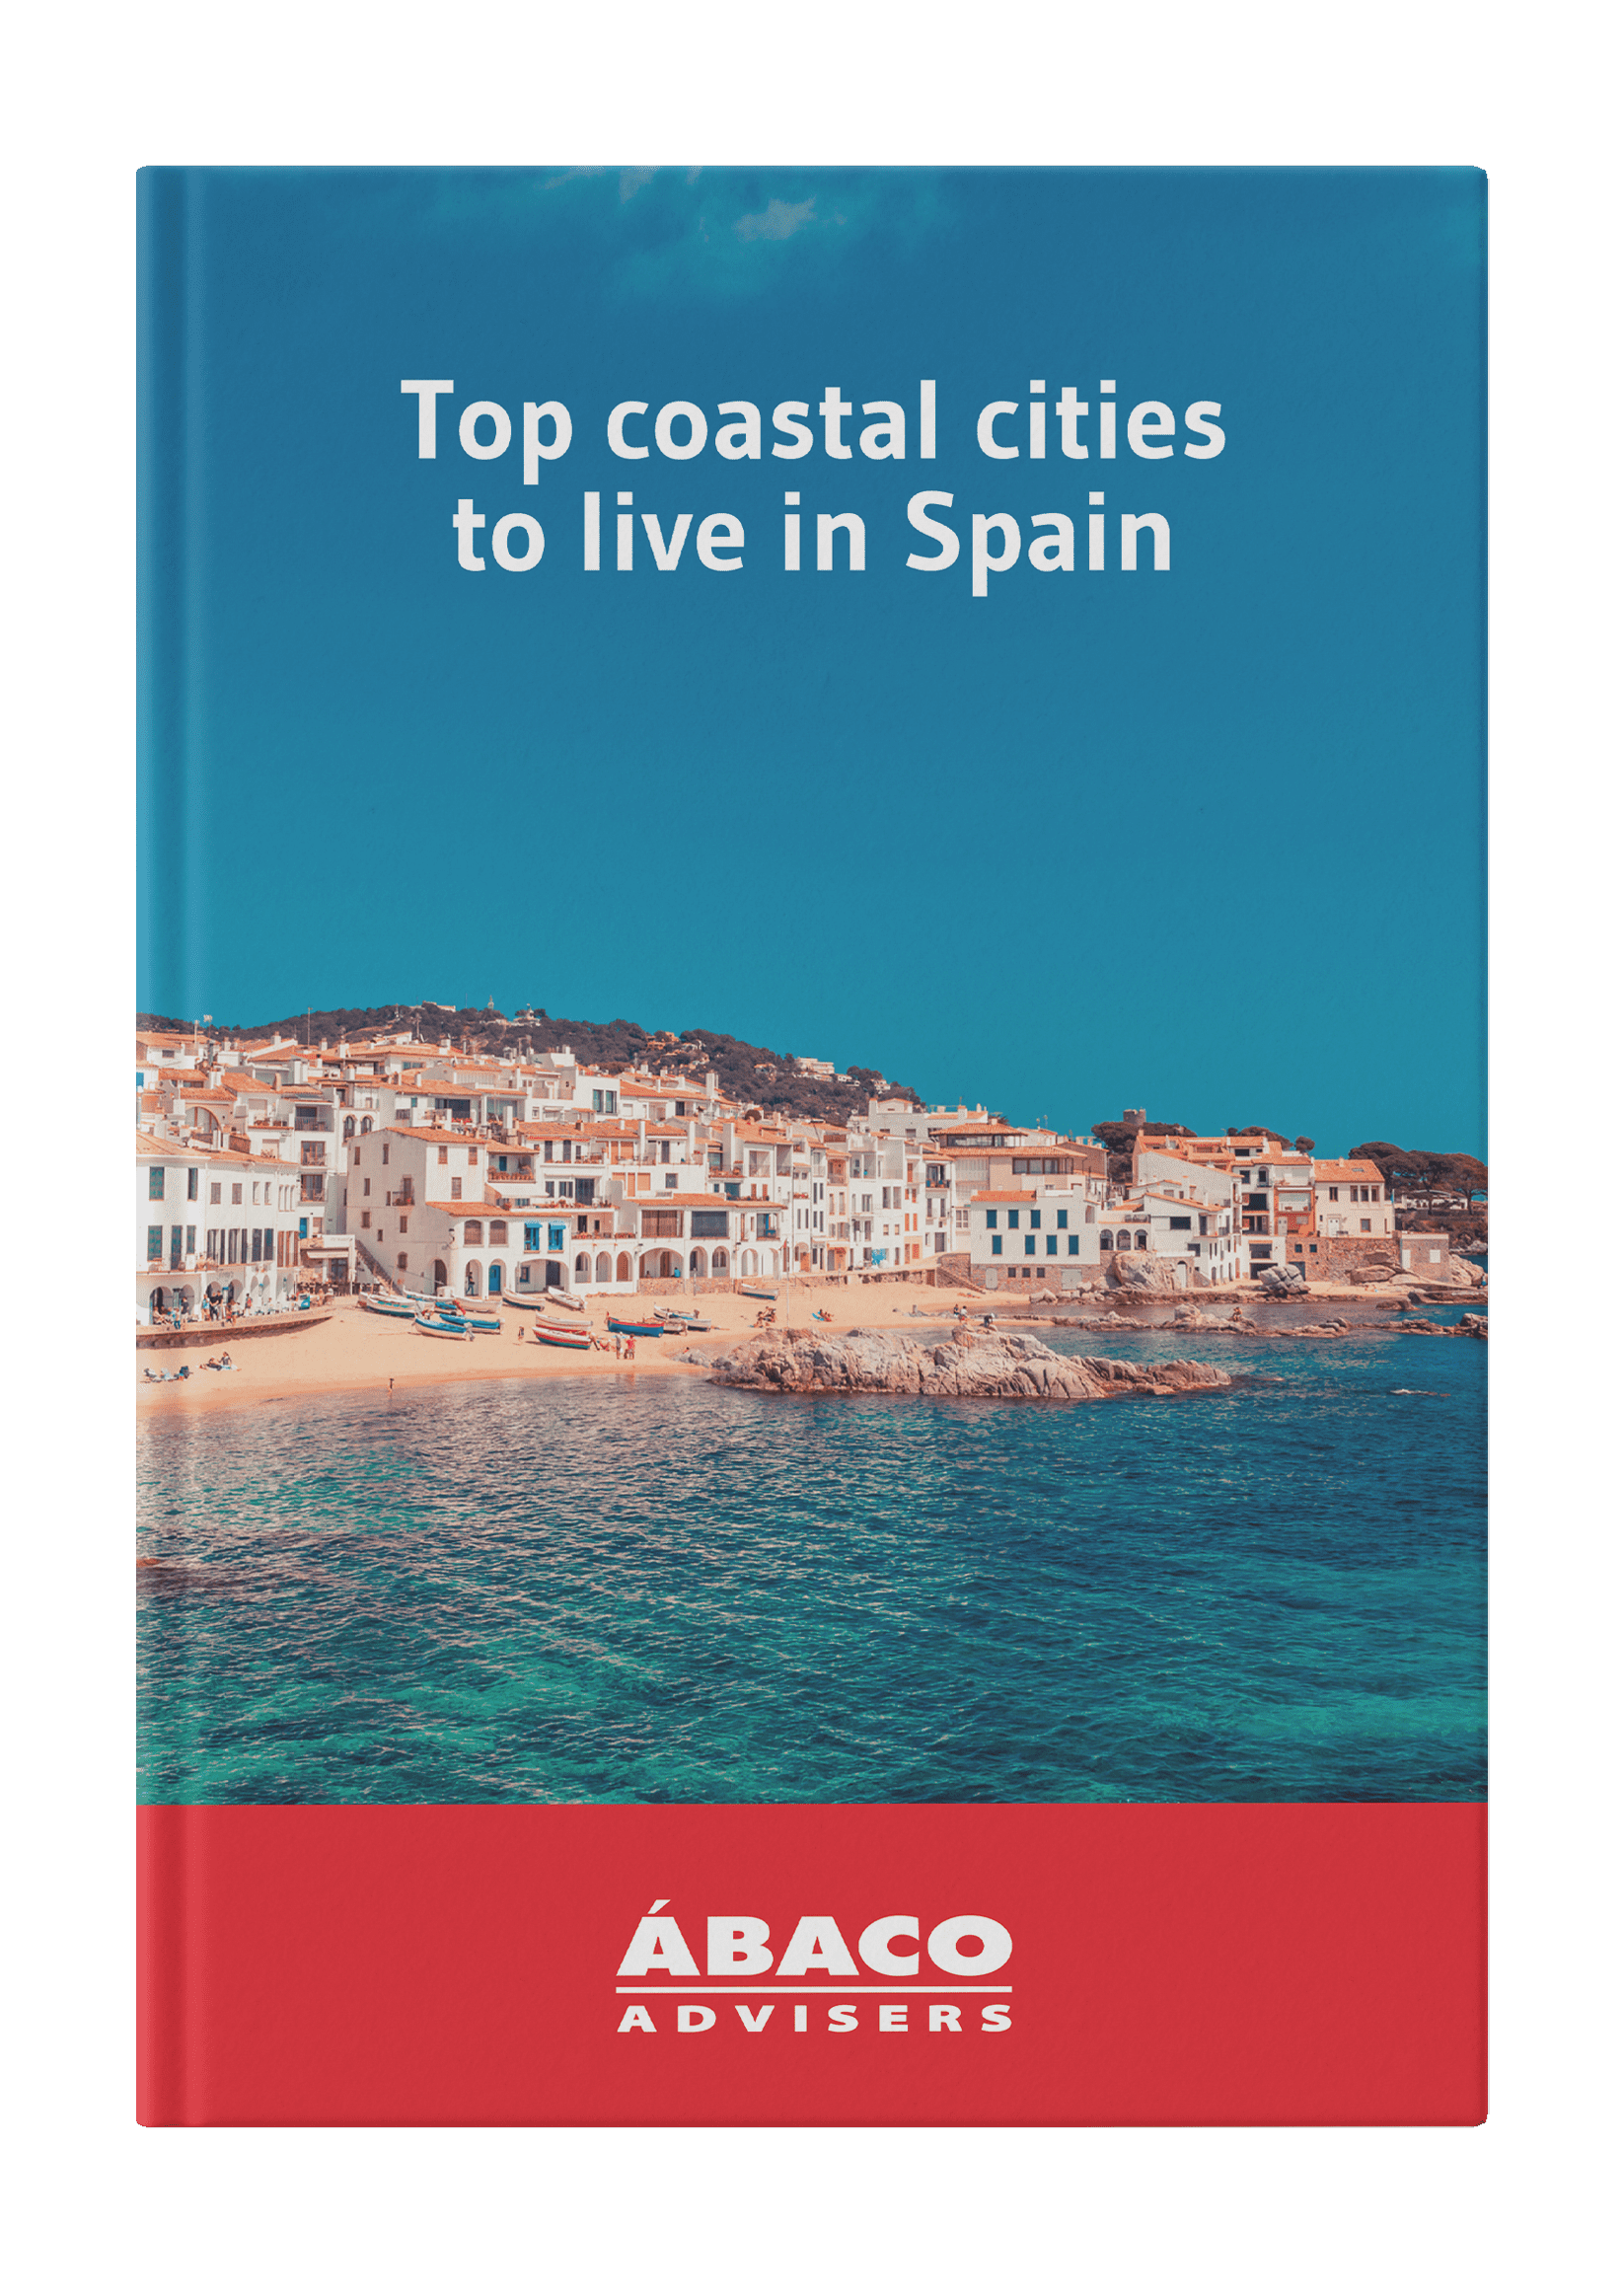 ABC - Top coastal cities to live in Spain - Portada (2) (1)